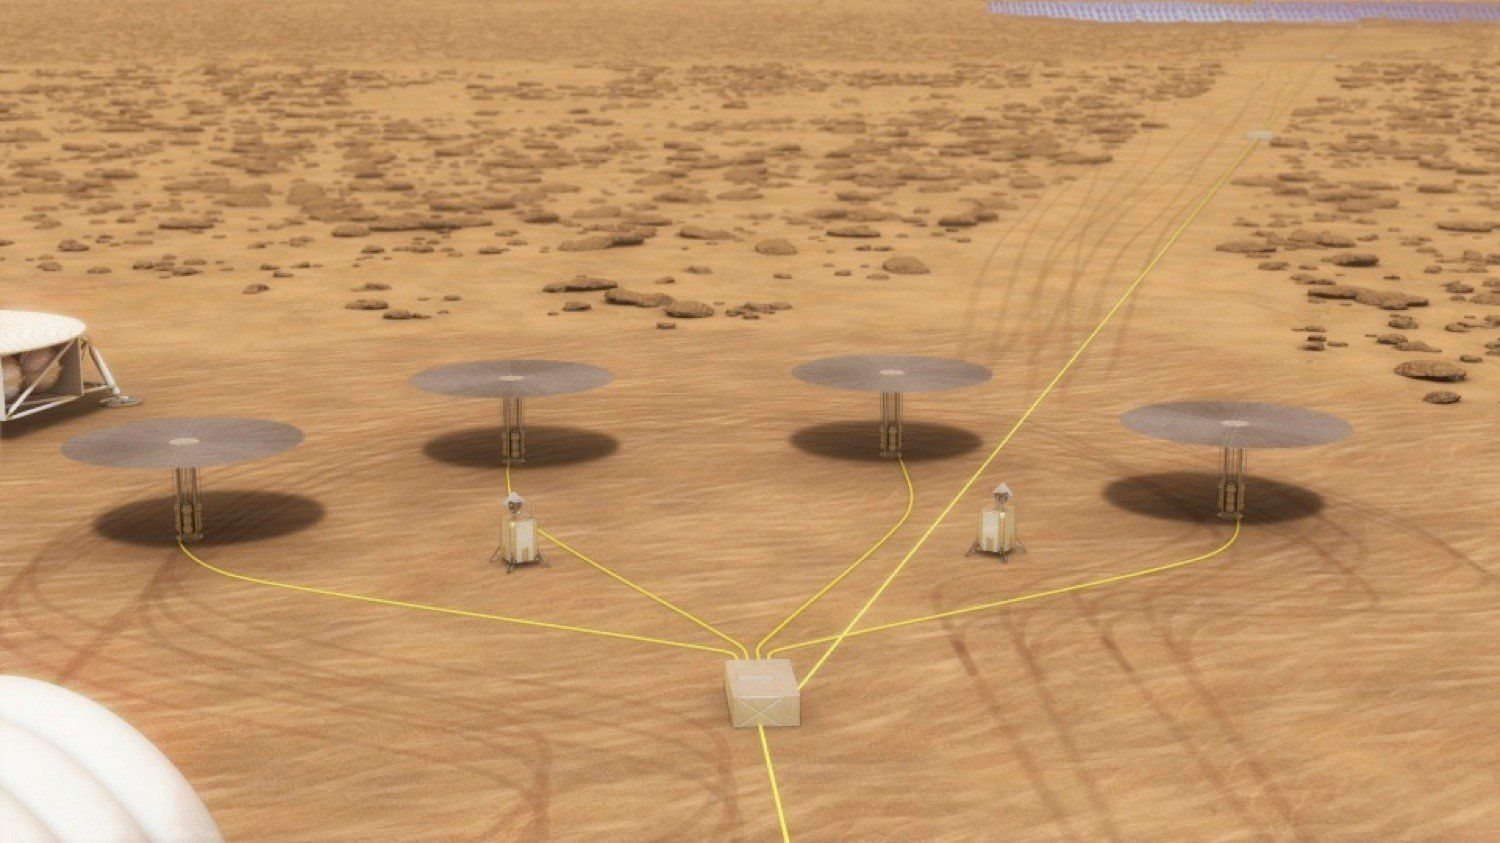 Nasa trials nuclear reactor to power settlement on Mars